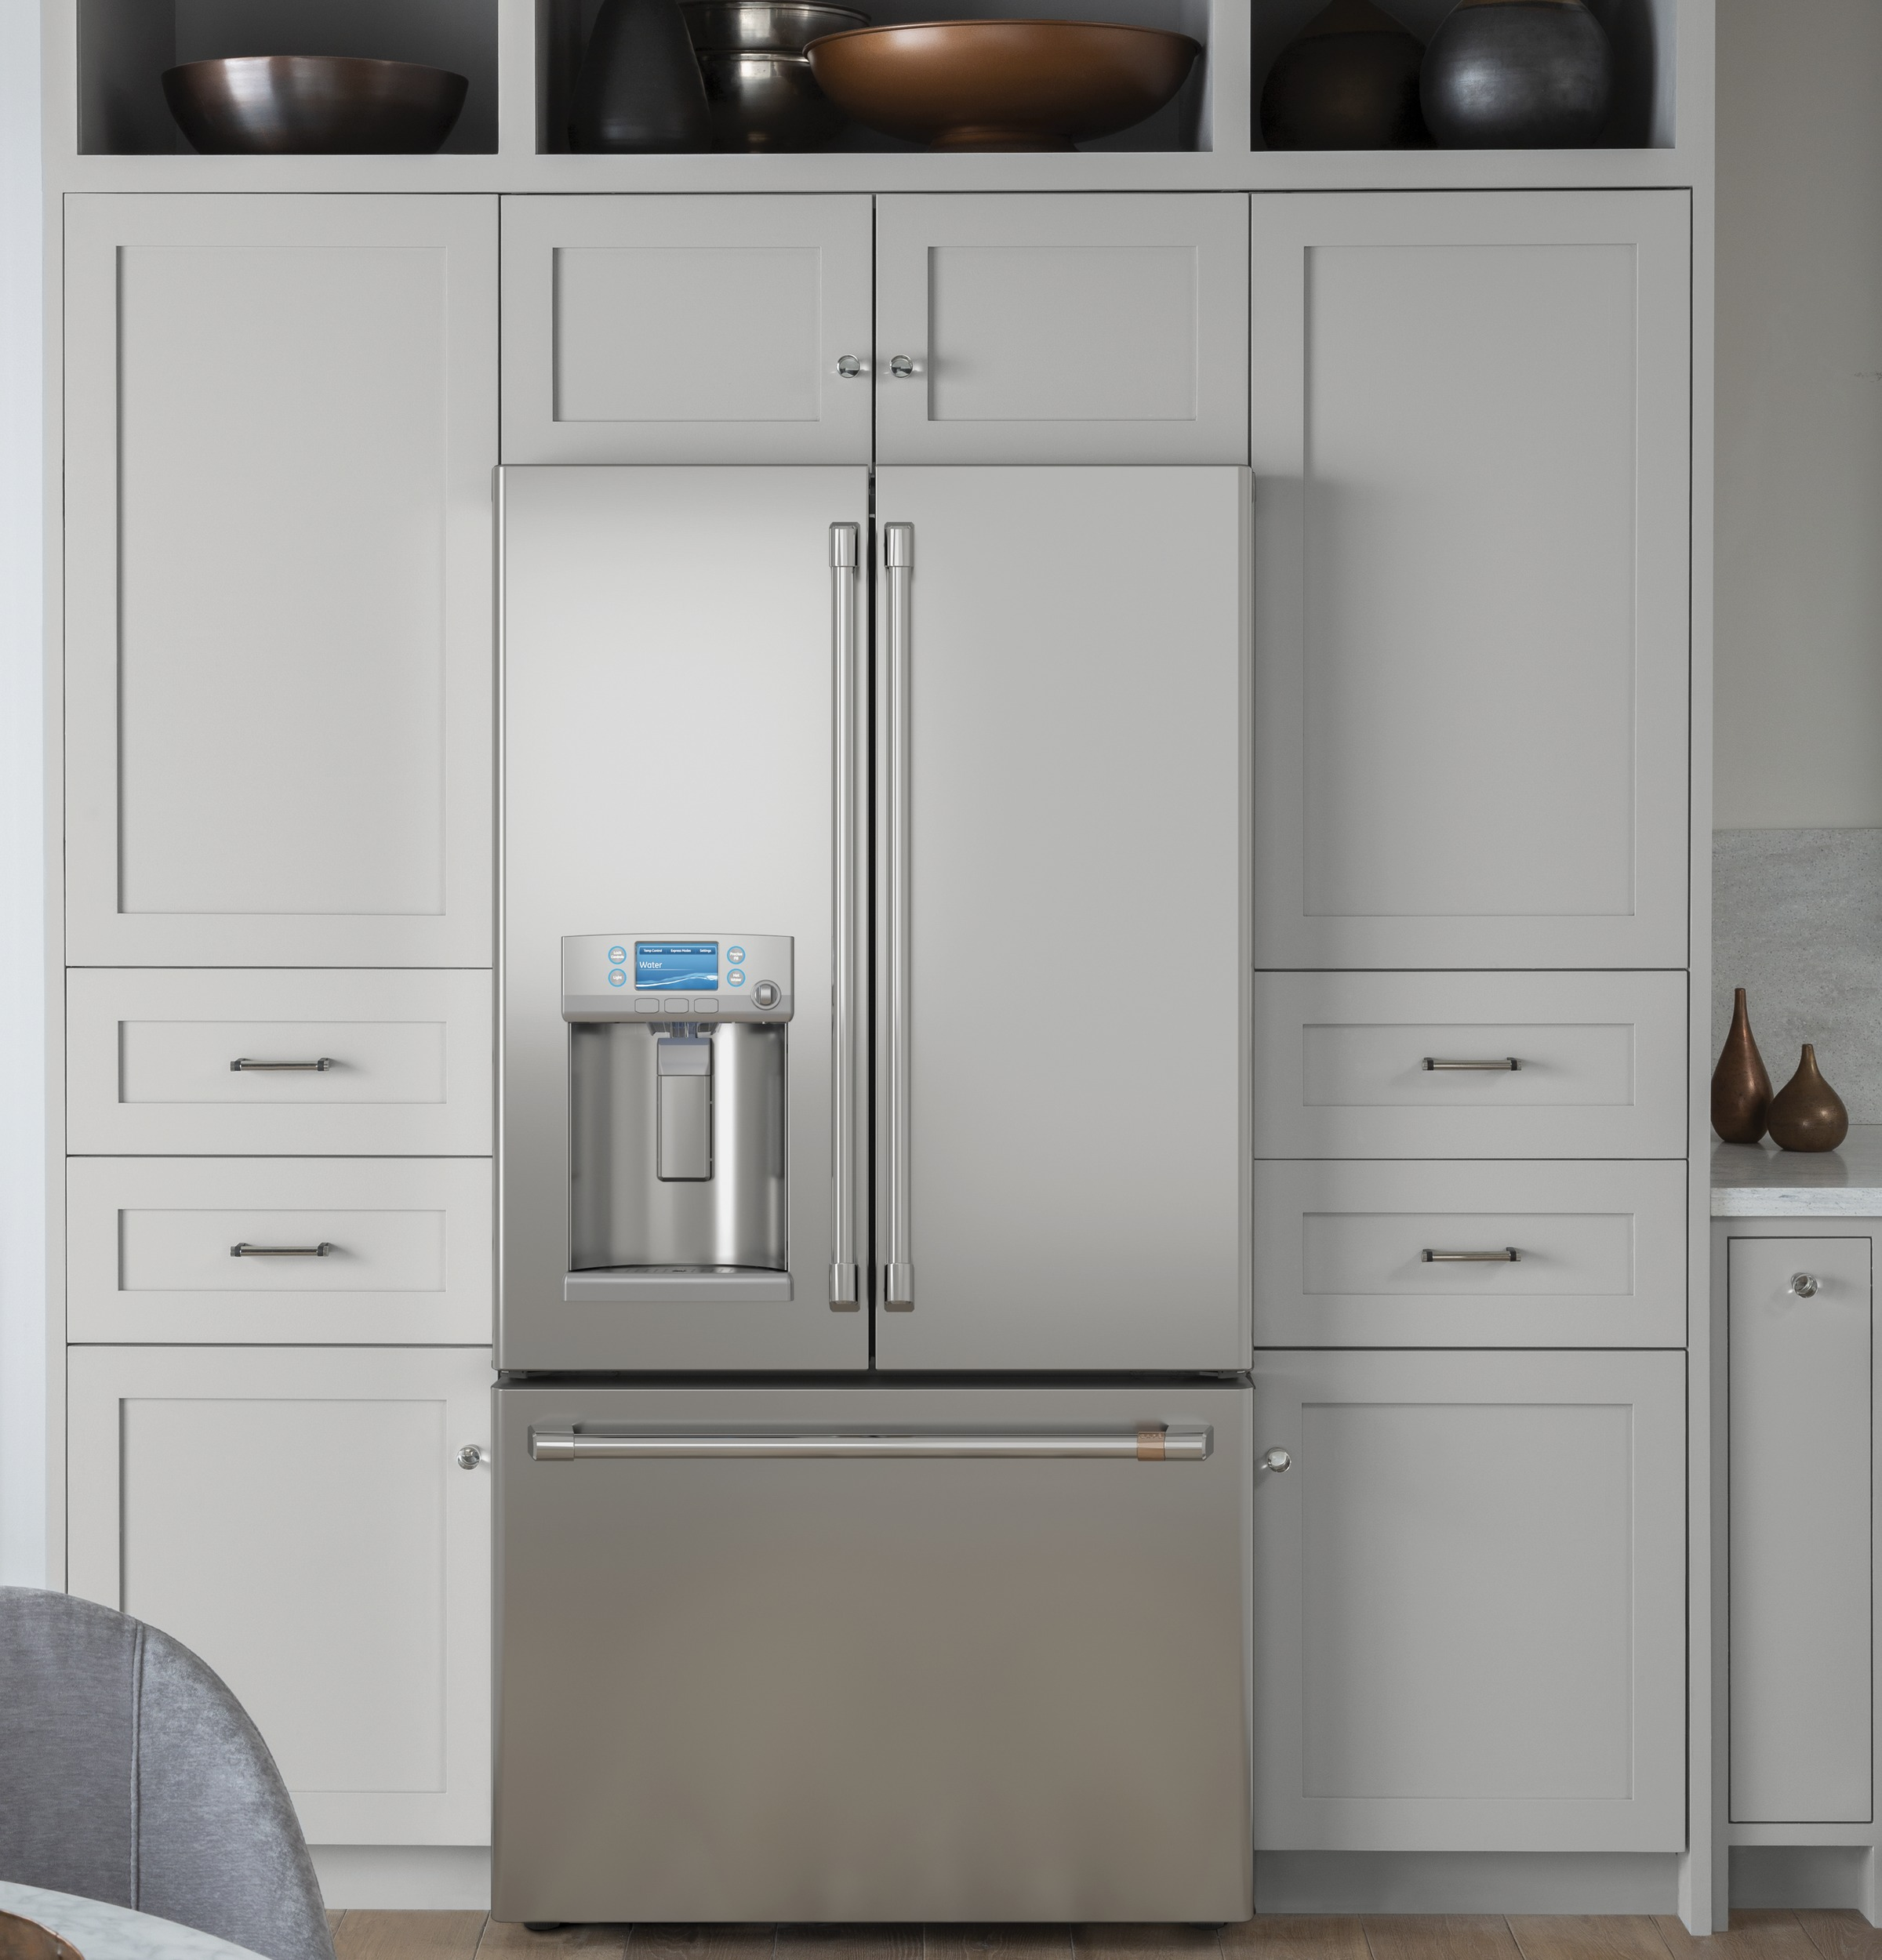 Model: CFE28TP2MS1 | Cafe Café™ ENERGY STAR® 27.7 Cu. Ft. Smart French-Door Refrigerator with Hot Water Dispenser